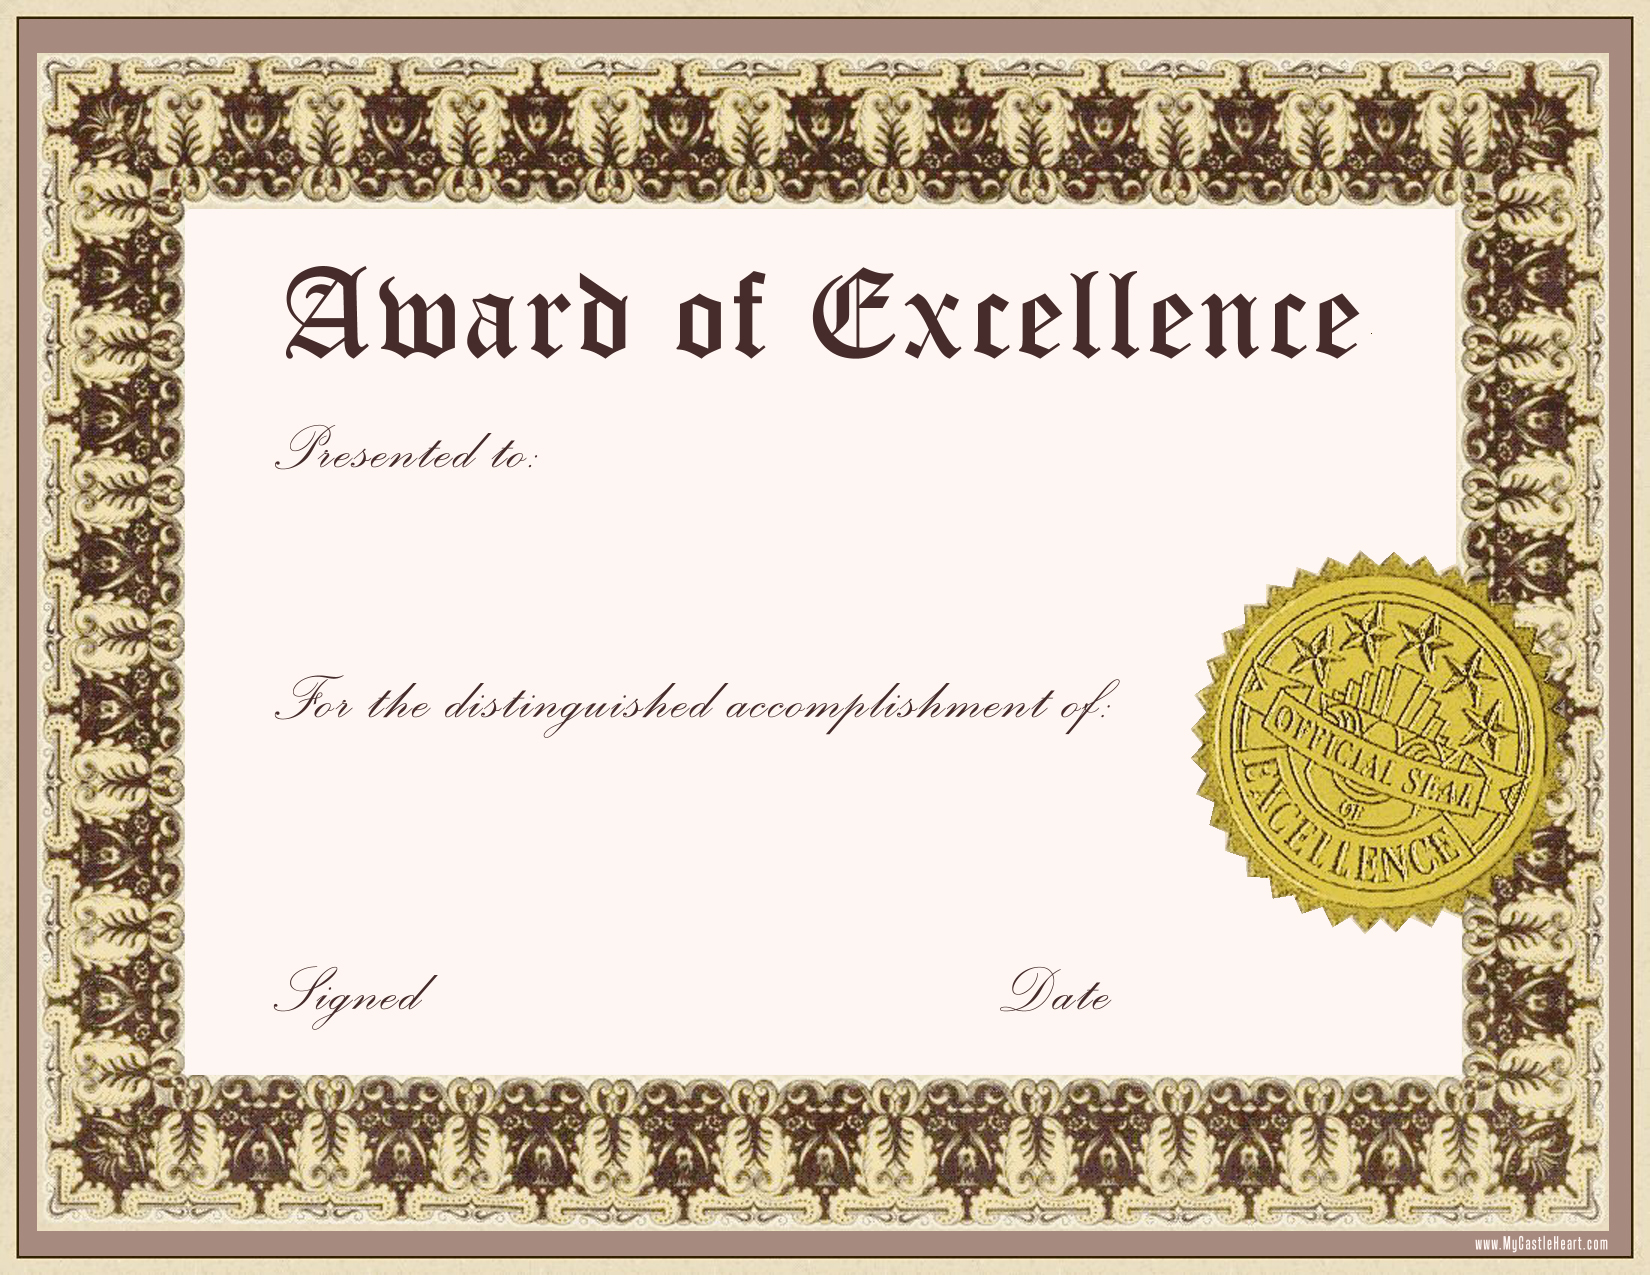 Pin Award Certificate Template on Pinterest 1nKcwHpI